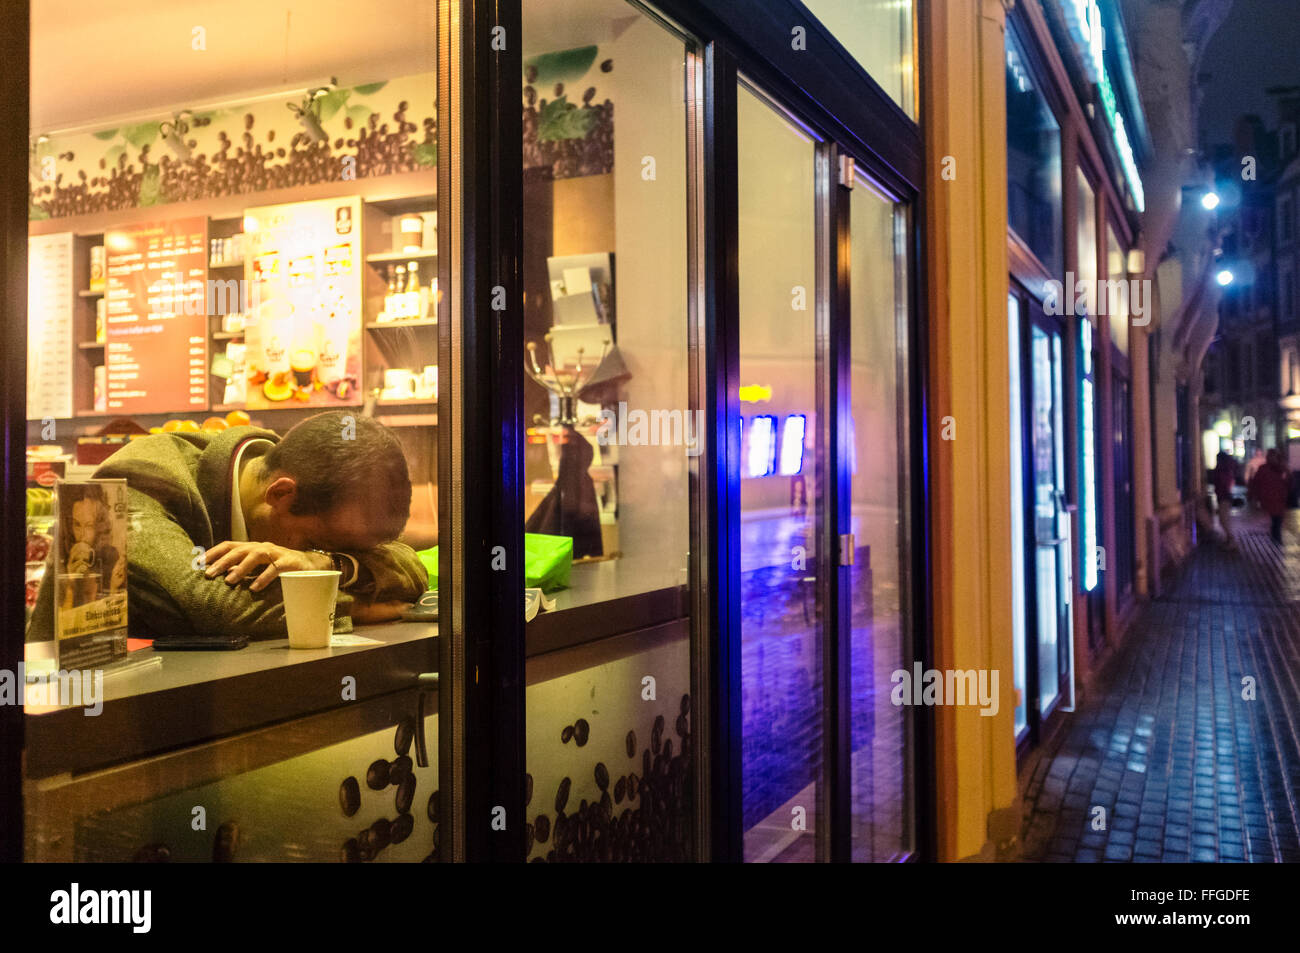 Lonely man falling asleep at a cafe at night as seen from the street - Stock Image